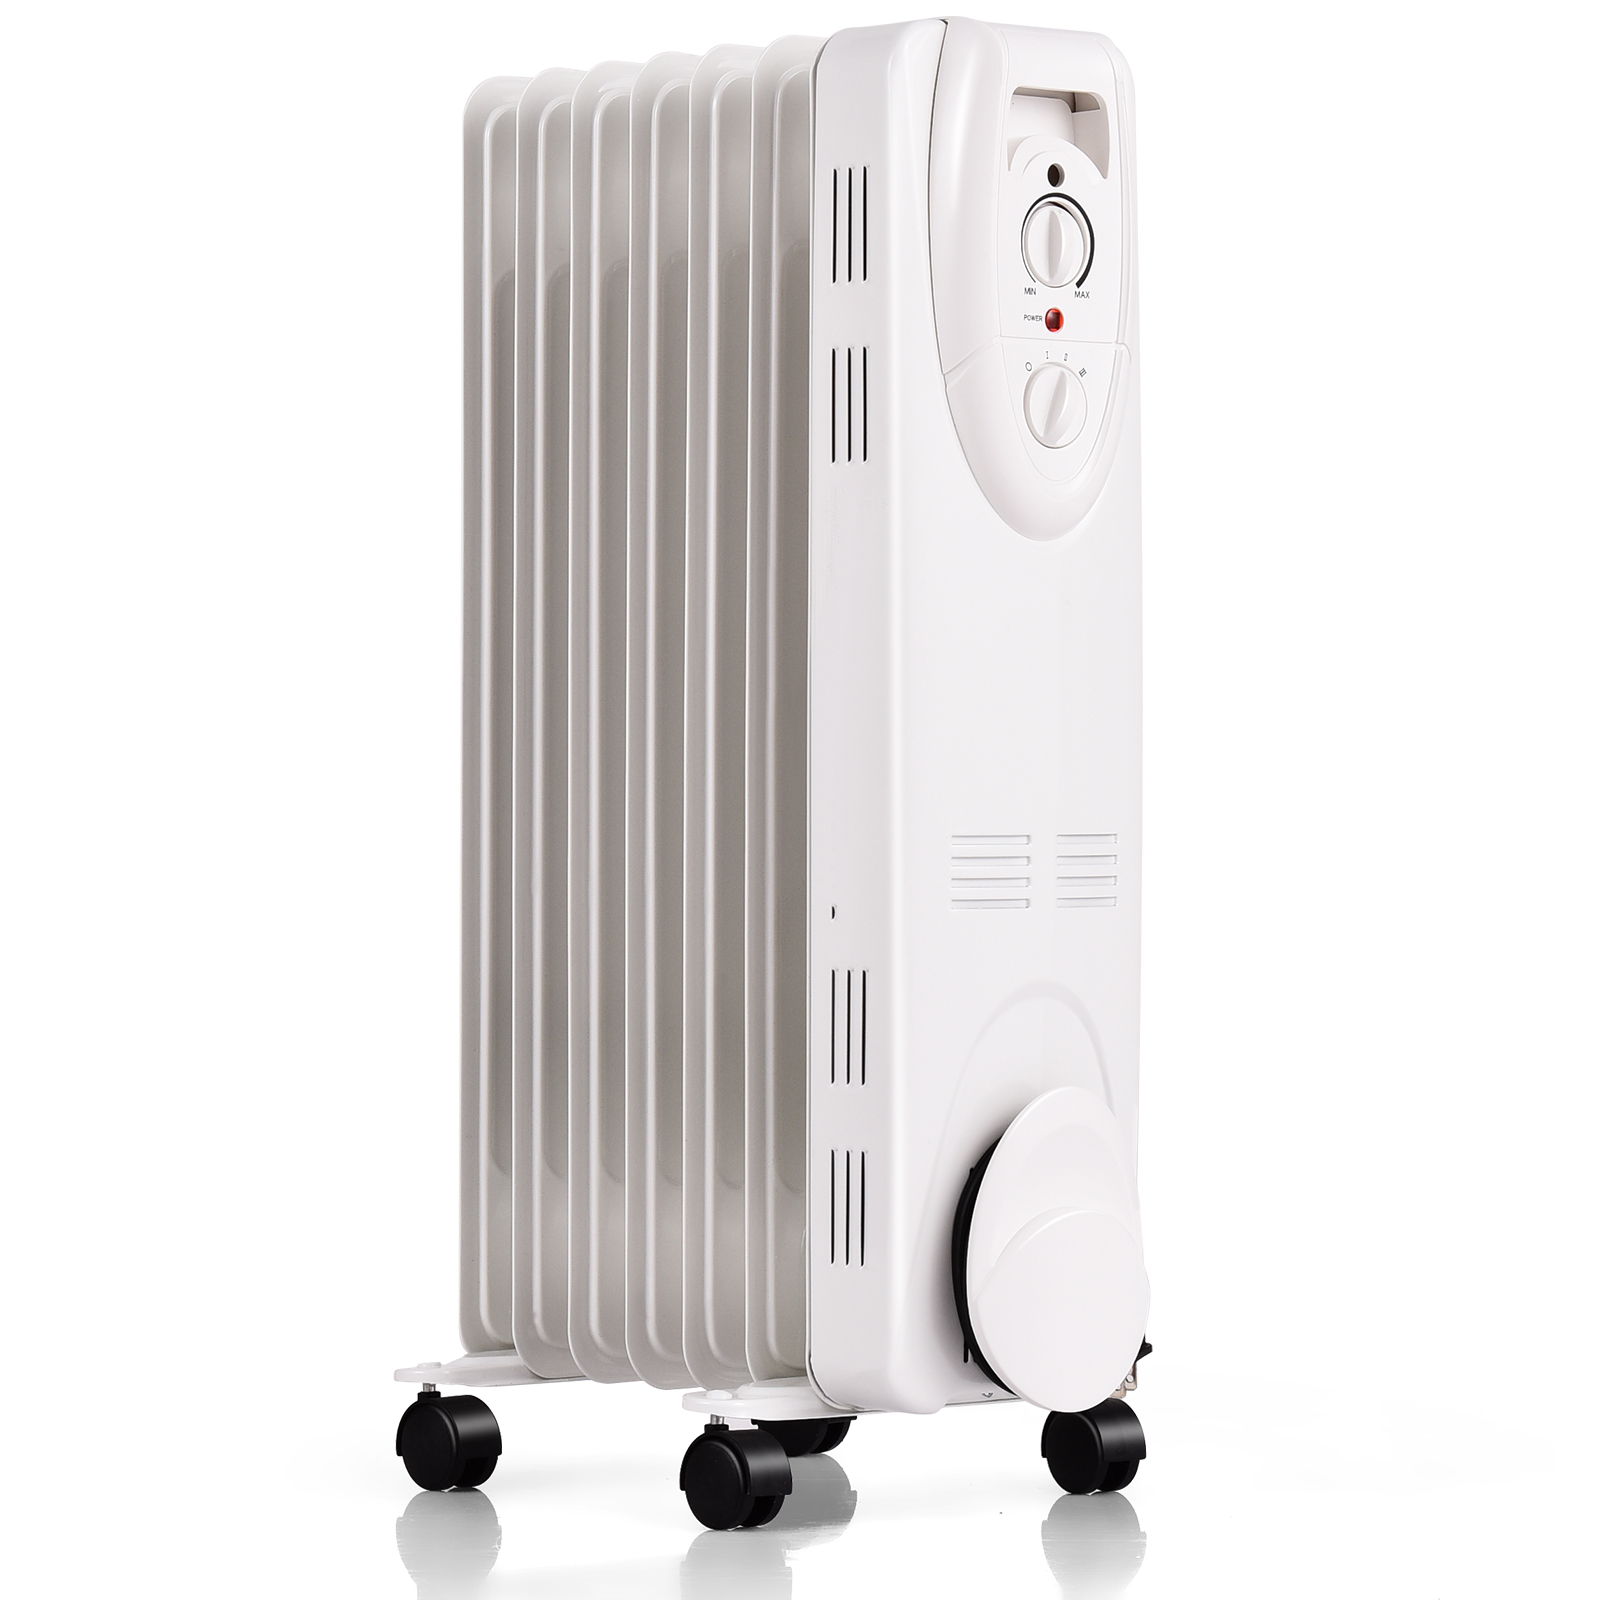 Portable Electric Oil Space Heater for Indoor Use 3 Heat Modes with Thermostat Energy Saving Super Quiet Remote Control 12H Timer LED Display for Bedroom Home Office Use LIFEPLUS Oil Filled Radiator Heater 1500W Sleek Black